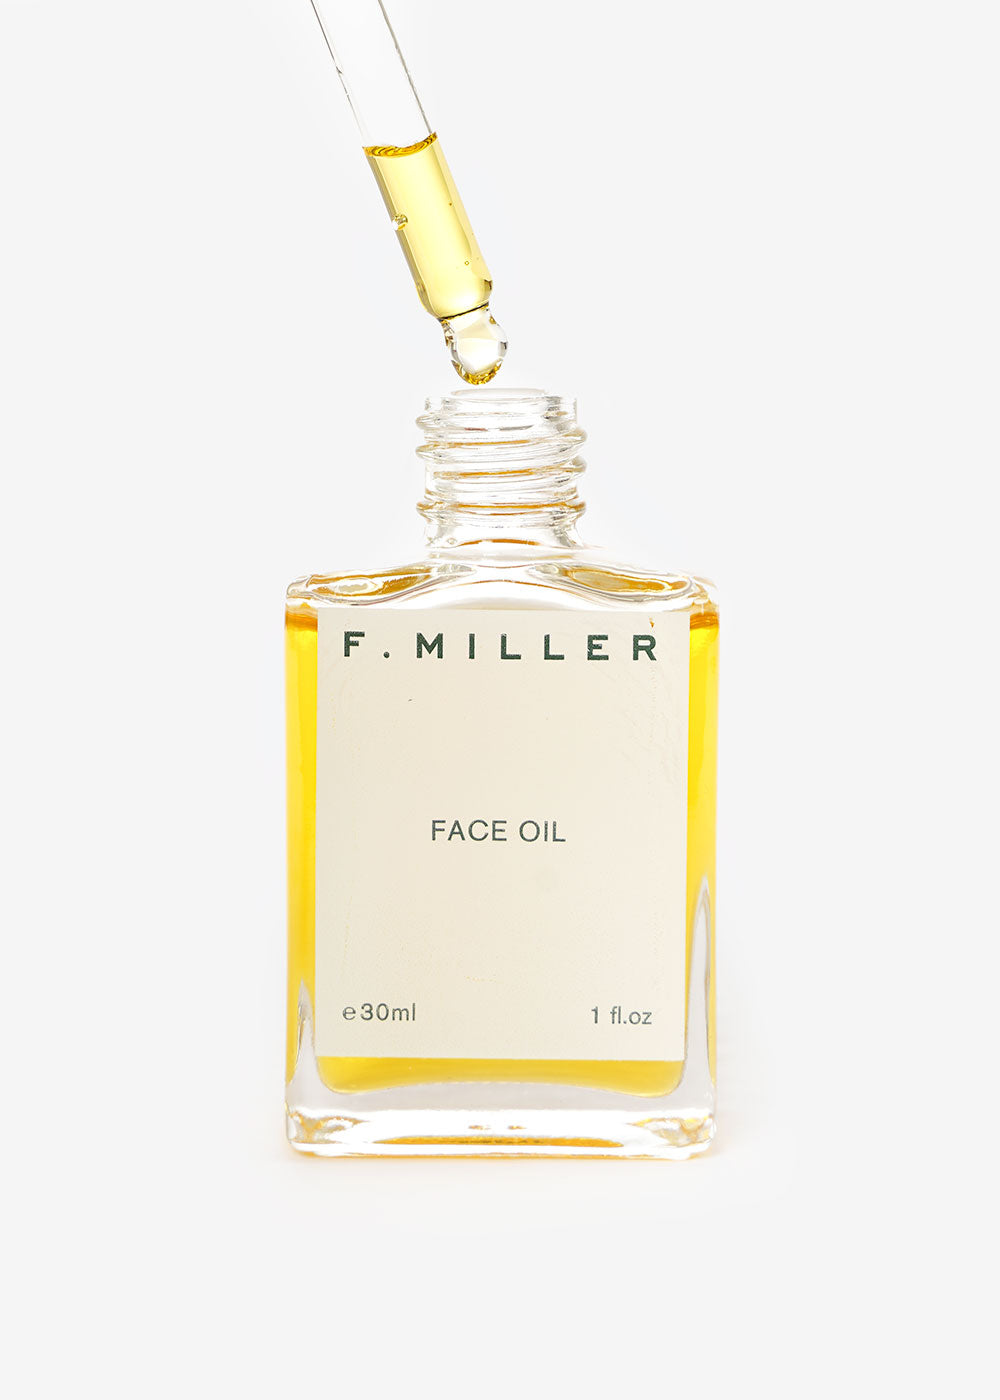 f.miller necessity kit ethical sustainable beauty skincare new classics studios canada